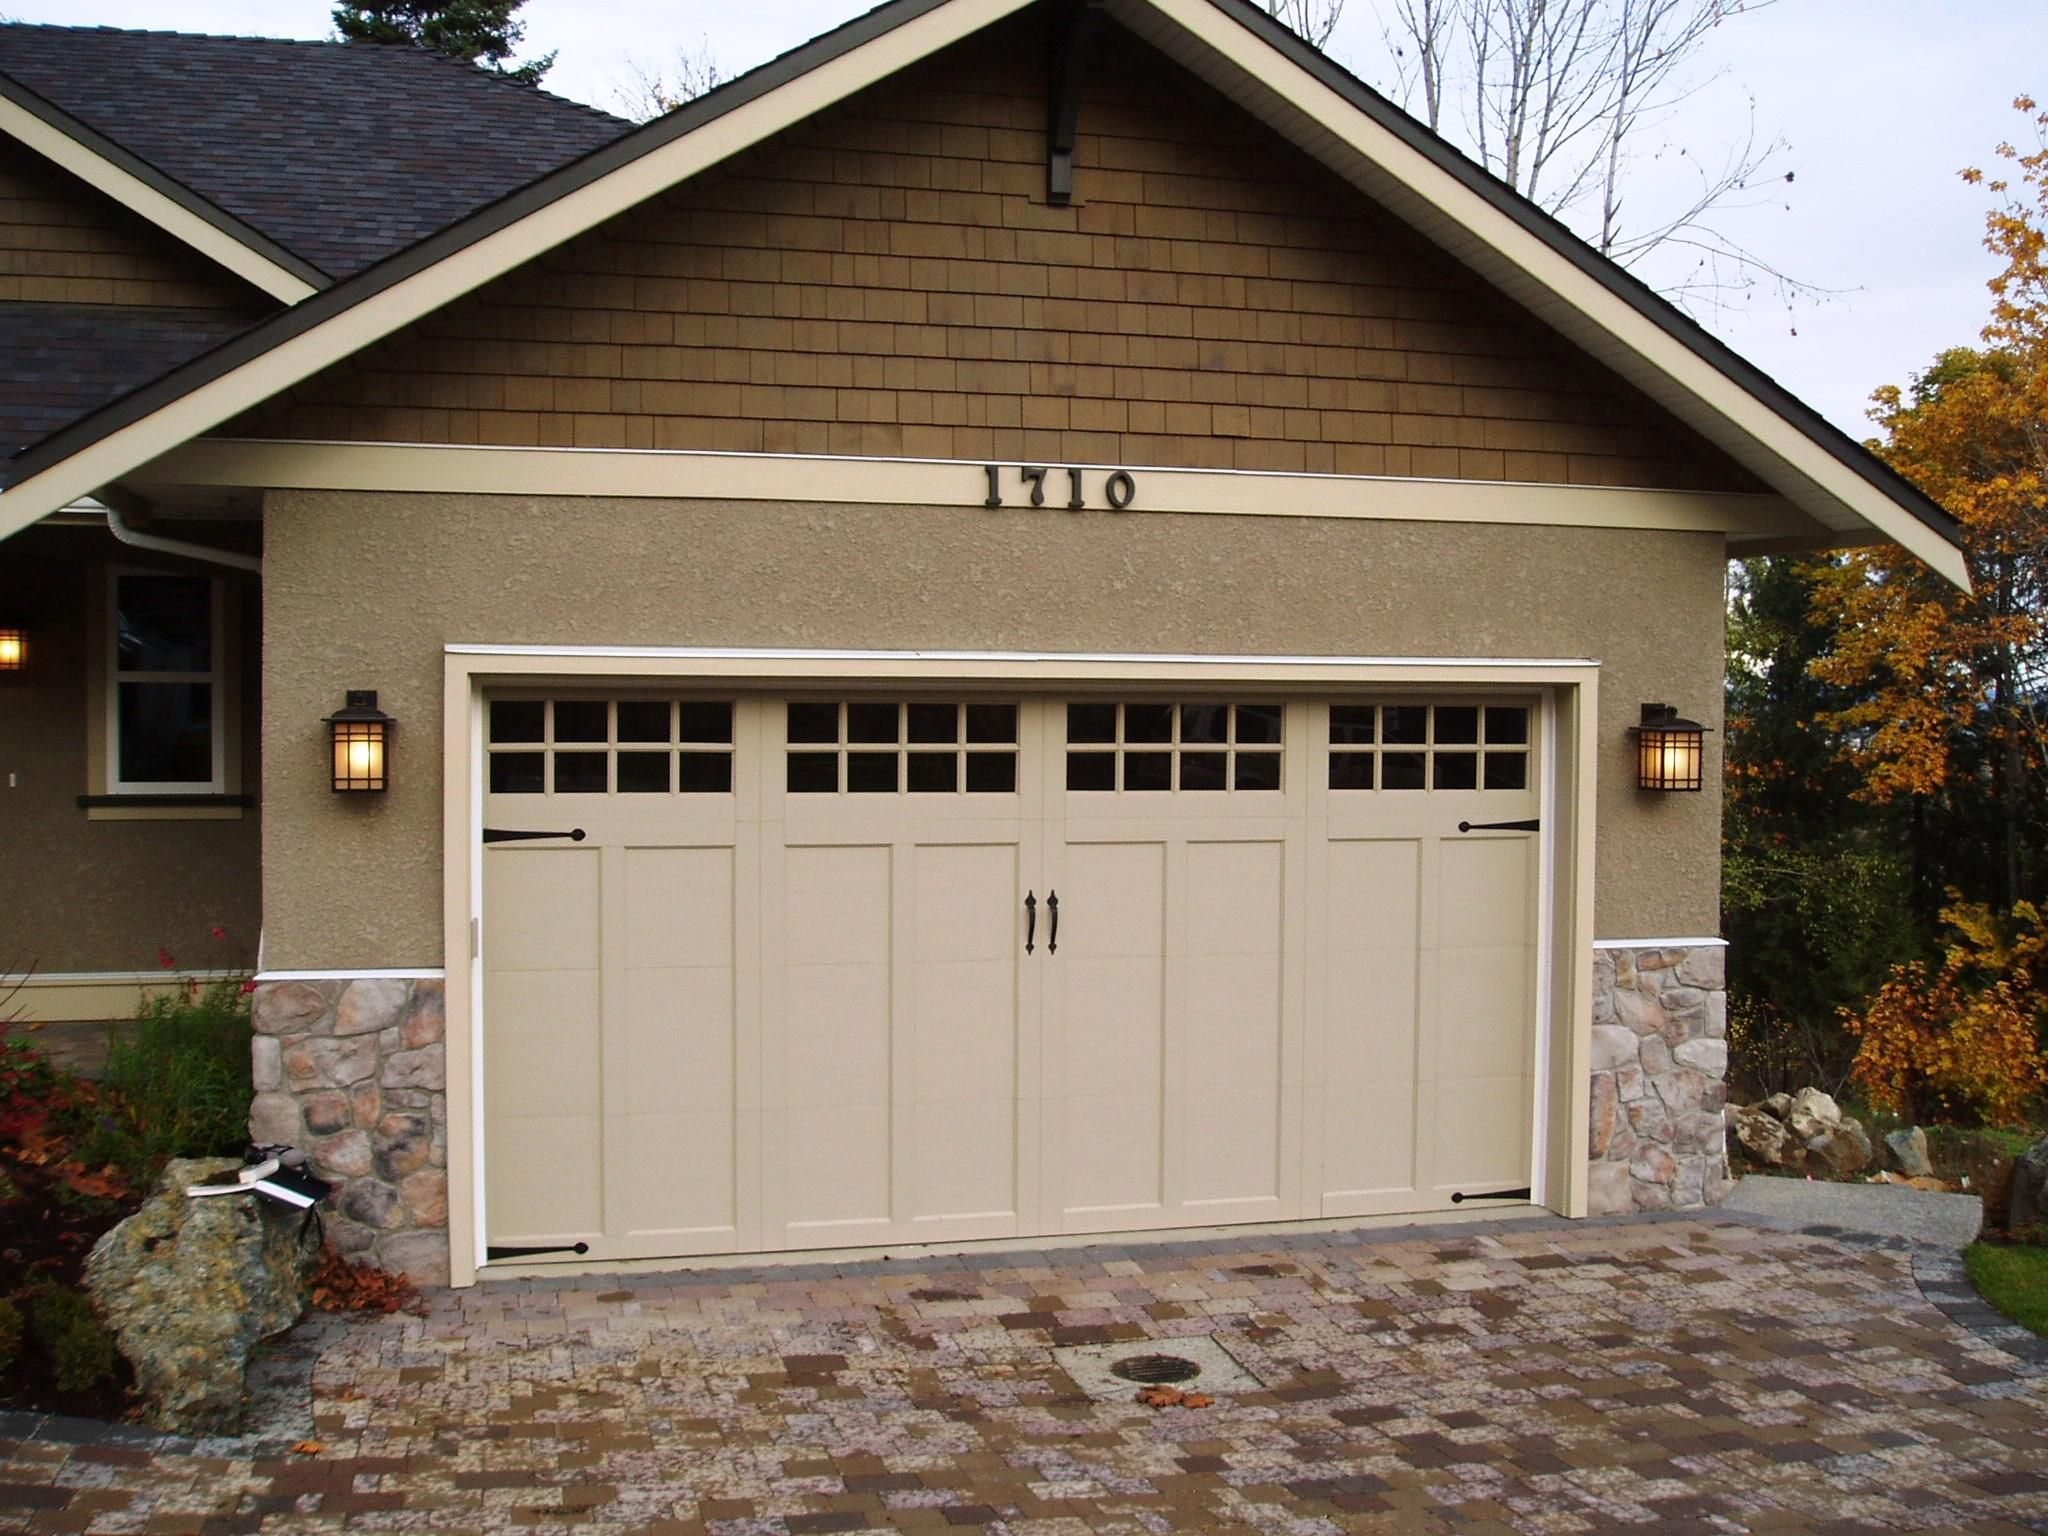 Carriage garage doors - The Simple Panel Design Of This Clopay Coachman Collection Carriage Style Garage Door Blends Perfectly With